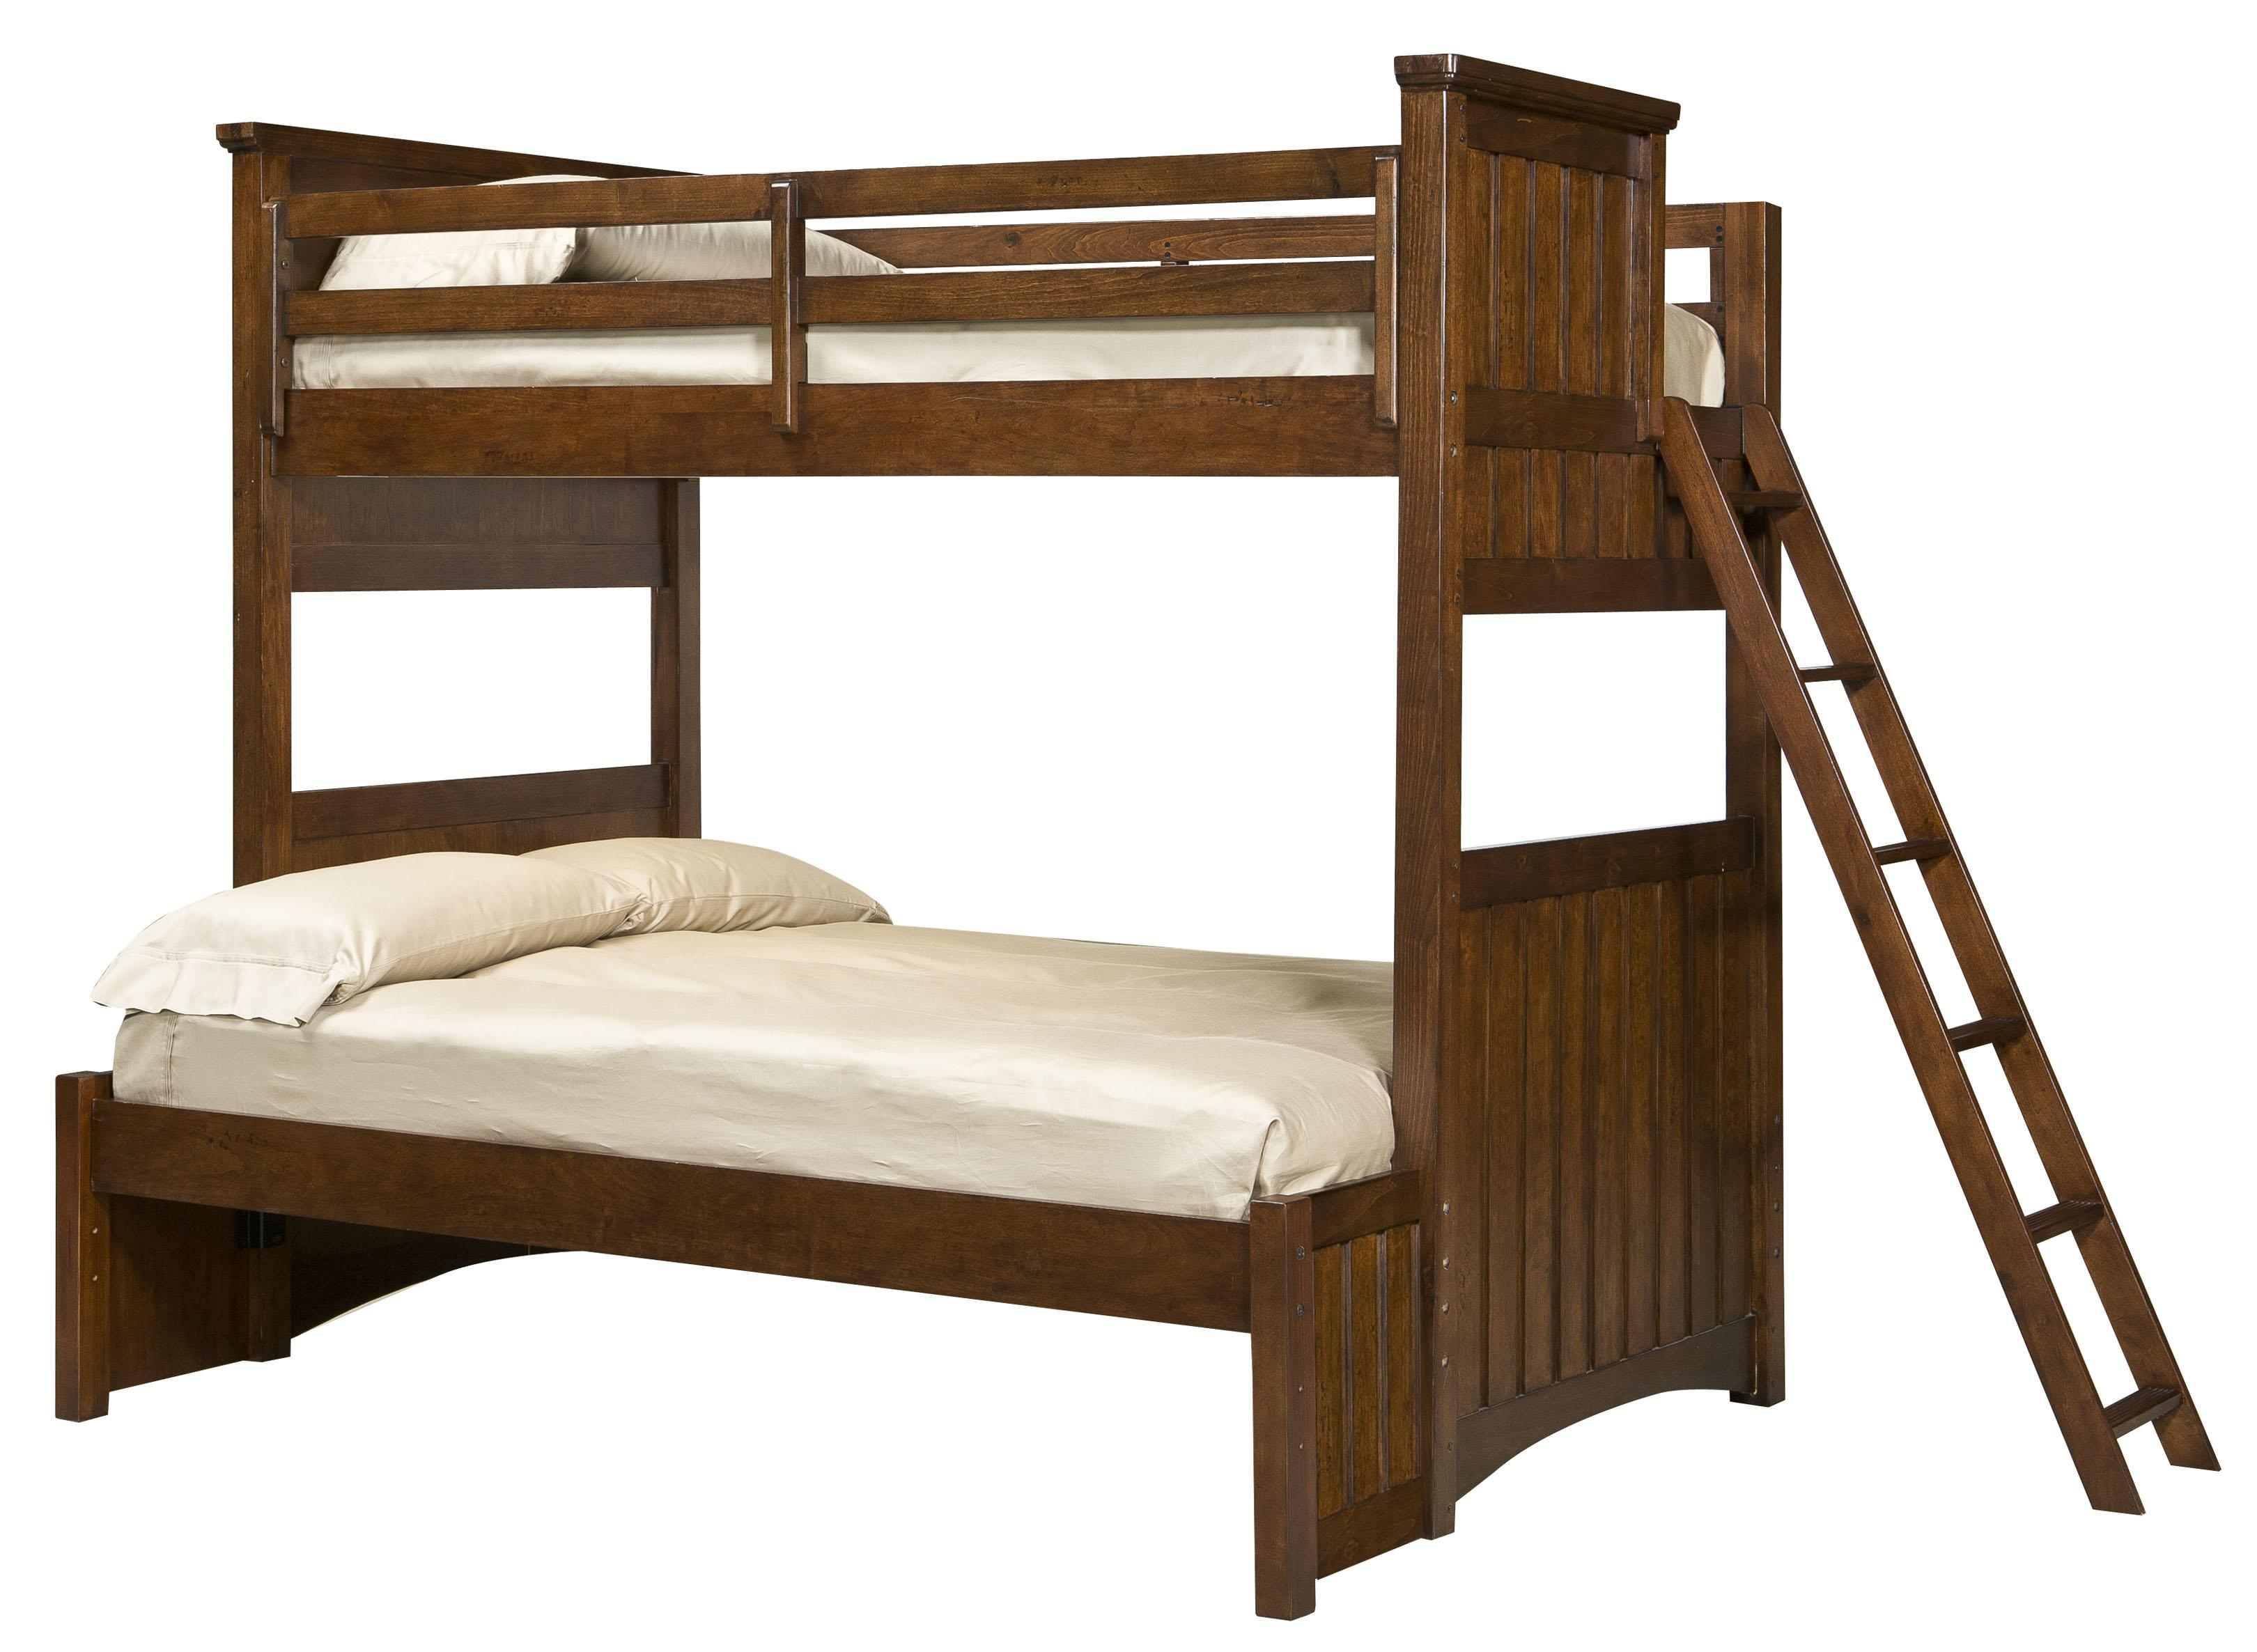 Legacy Classic Kids Dawson's Ridge Twin-over-Full Bunk w/ Ladder - Item Number: 2960-510+320+310+140+888-4923C+24C